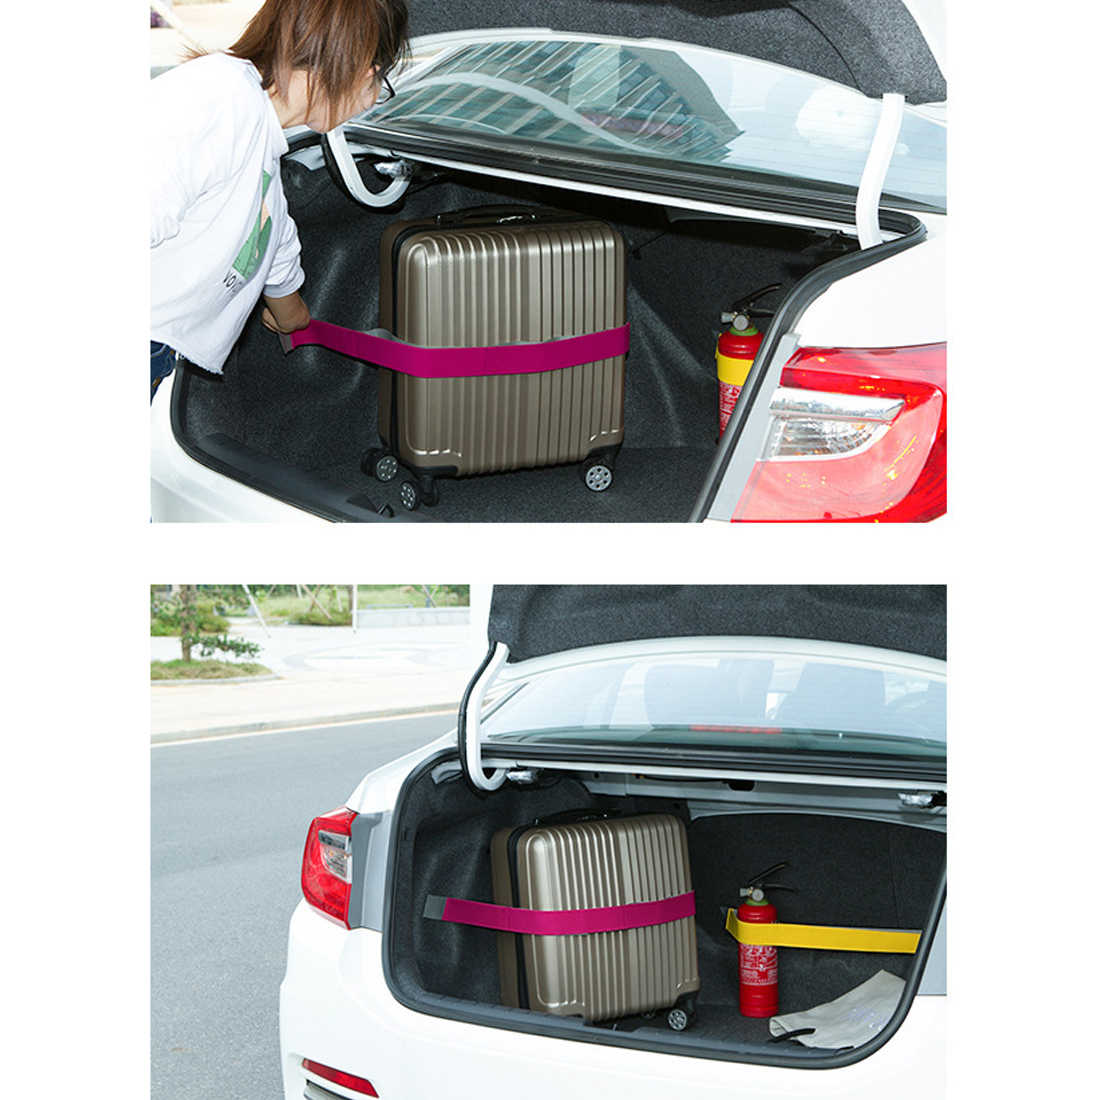 Promotion Car Trunk Organizer Elastic Car-styling Color Strap Fixed Sundry Stowing Tidying Auto Interior Accessories Dewtreetali